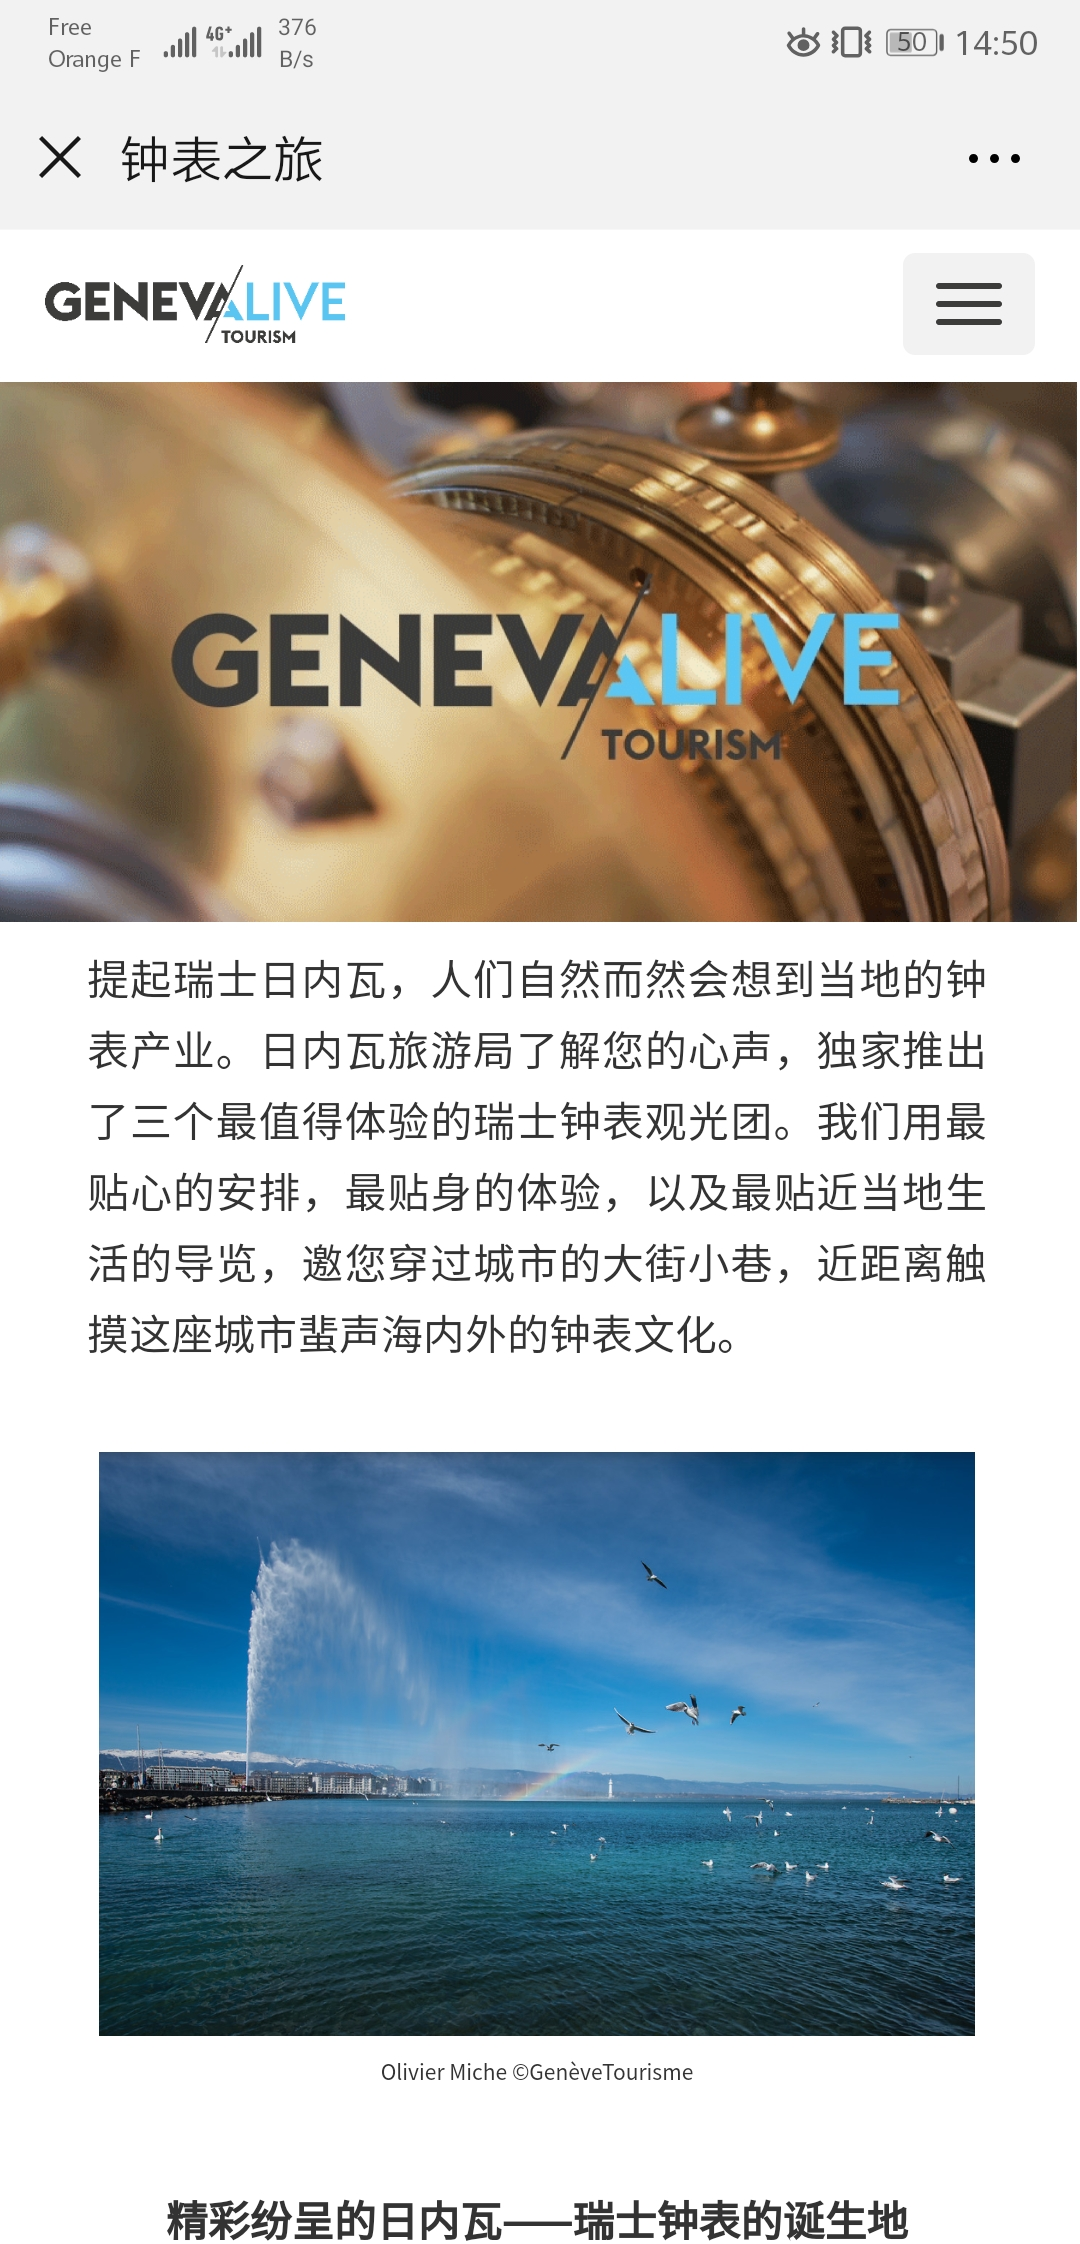 GENEVA TOURISM WeChat account